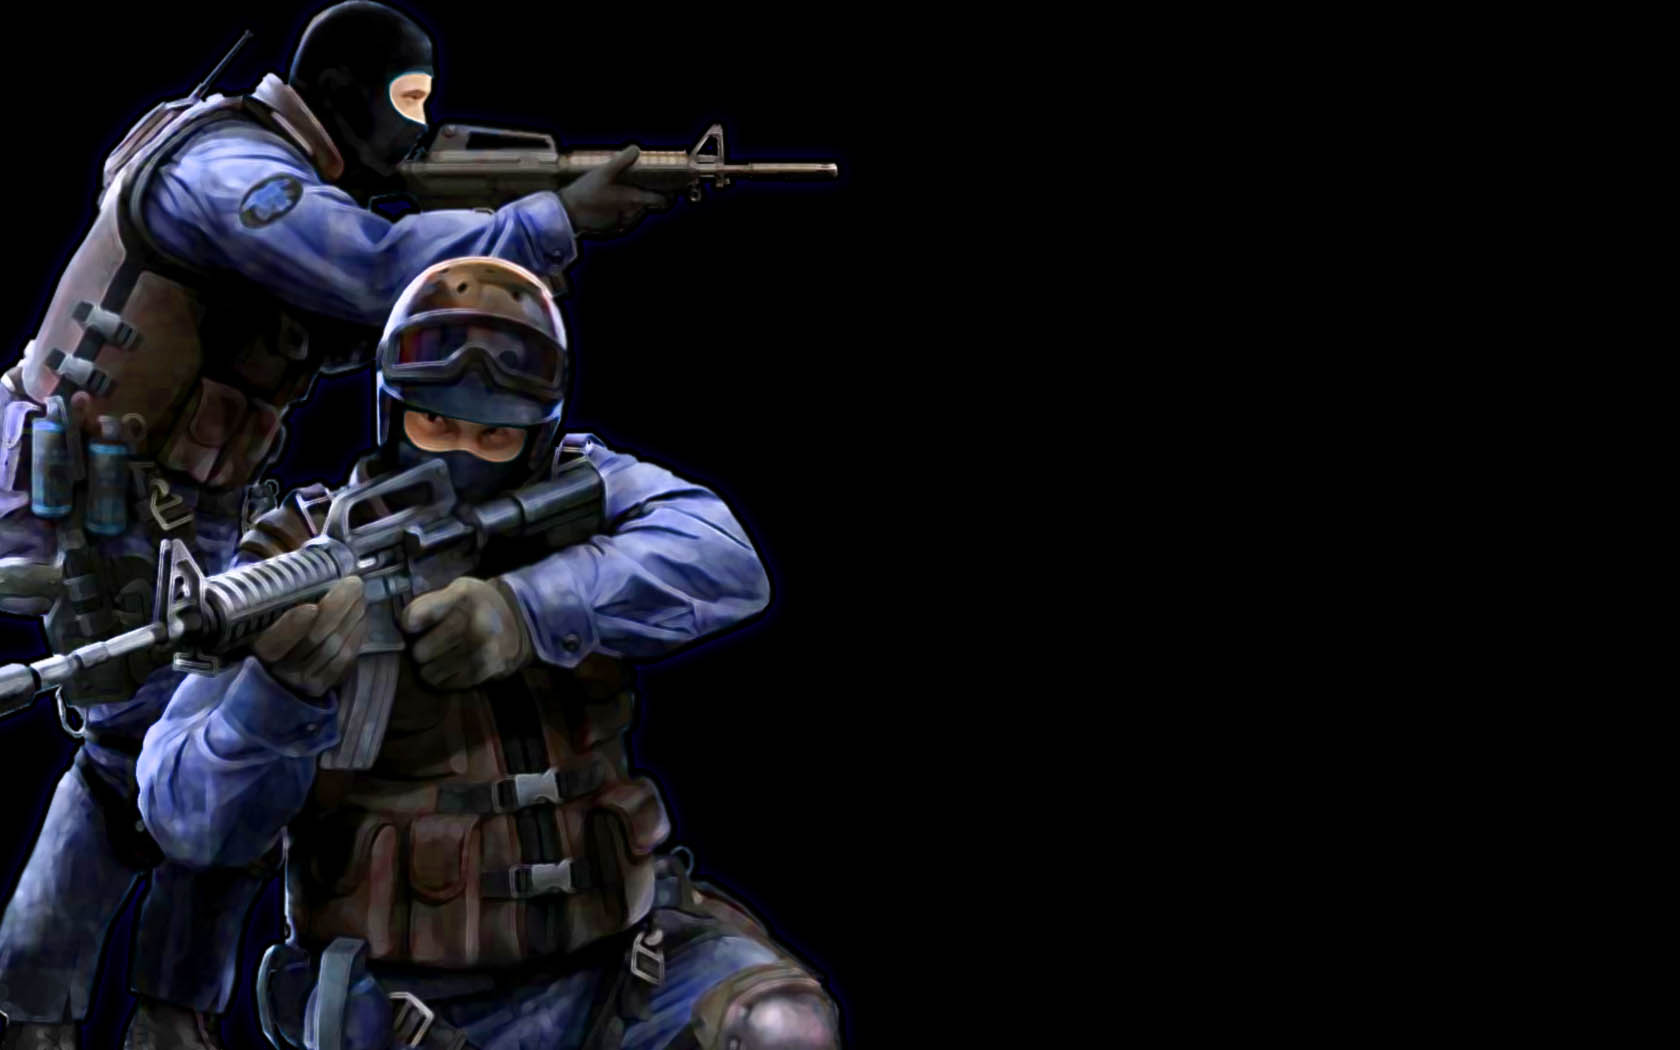 Counter-Strike High Resolution HD Wallpapers - All HD ... Counter Strike Wallpaper Hd